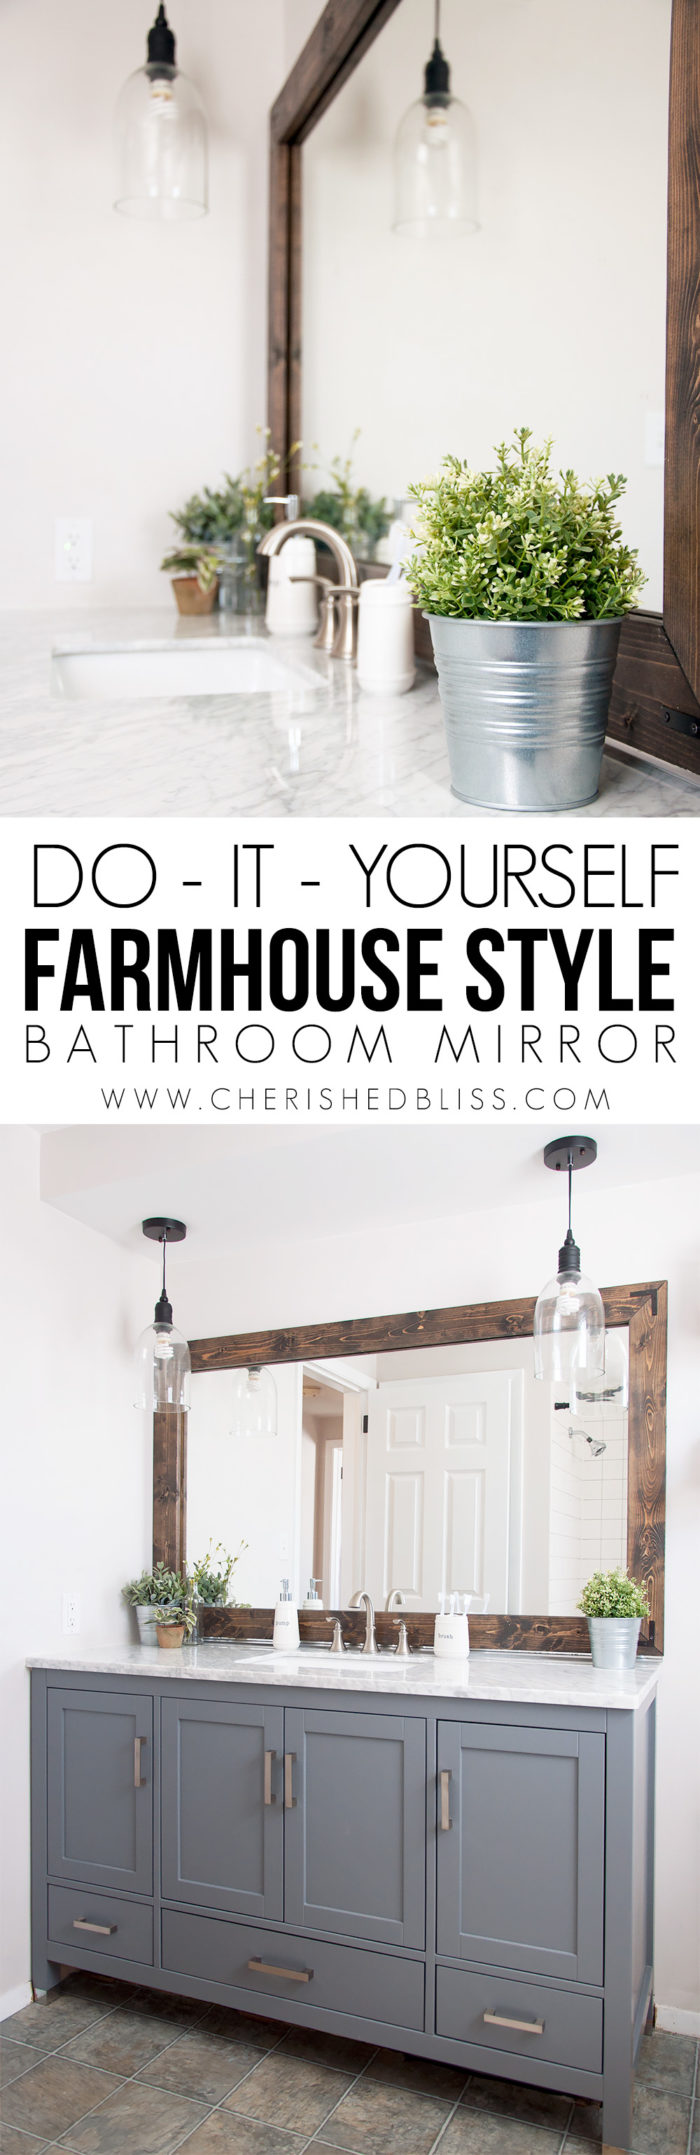 Farmhouse Bathroom Mirror Tutorial Cherished Bliss